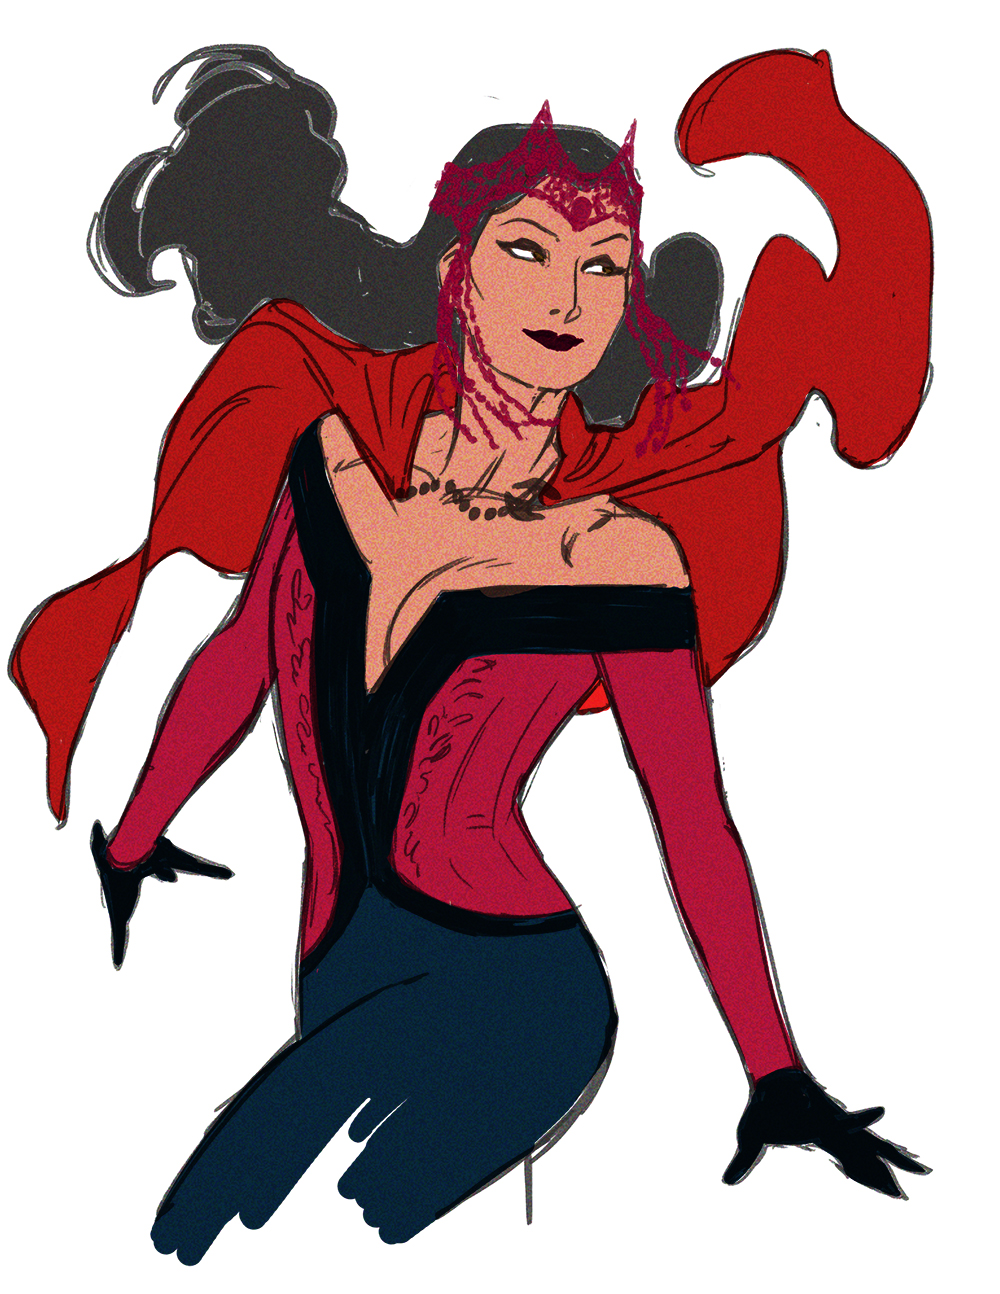 Drawn witchcraft scarlet witch Cool yearning Scarlet Scarlet downall